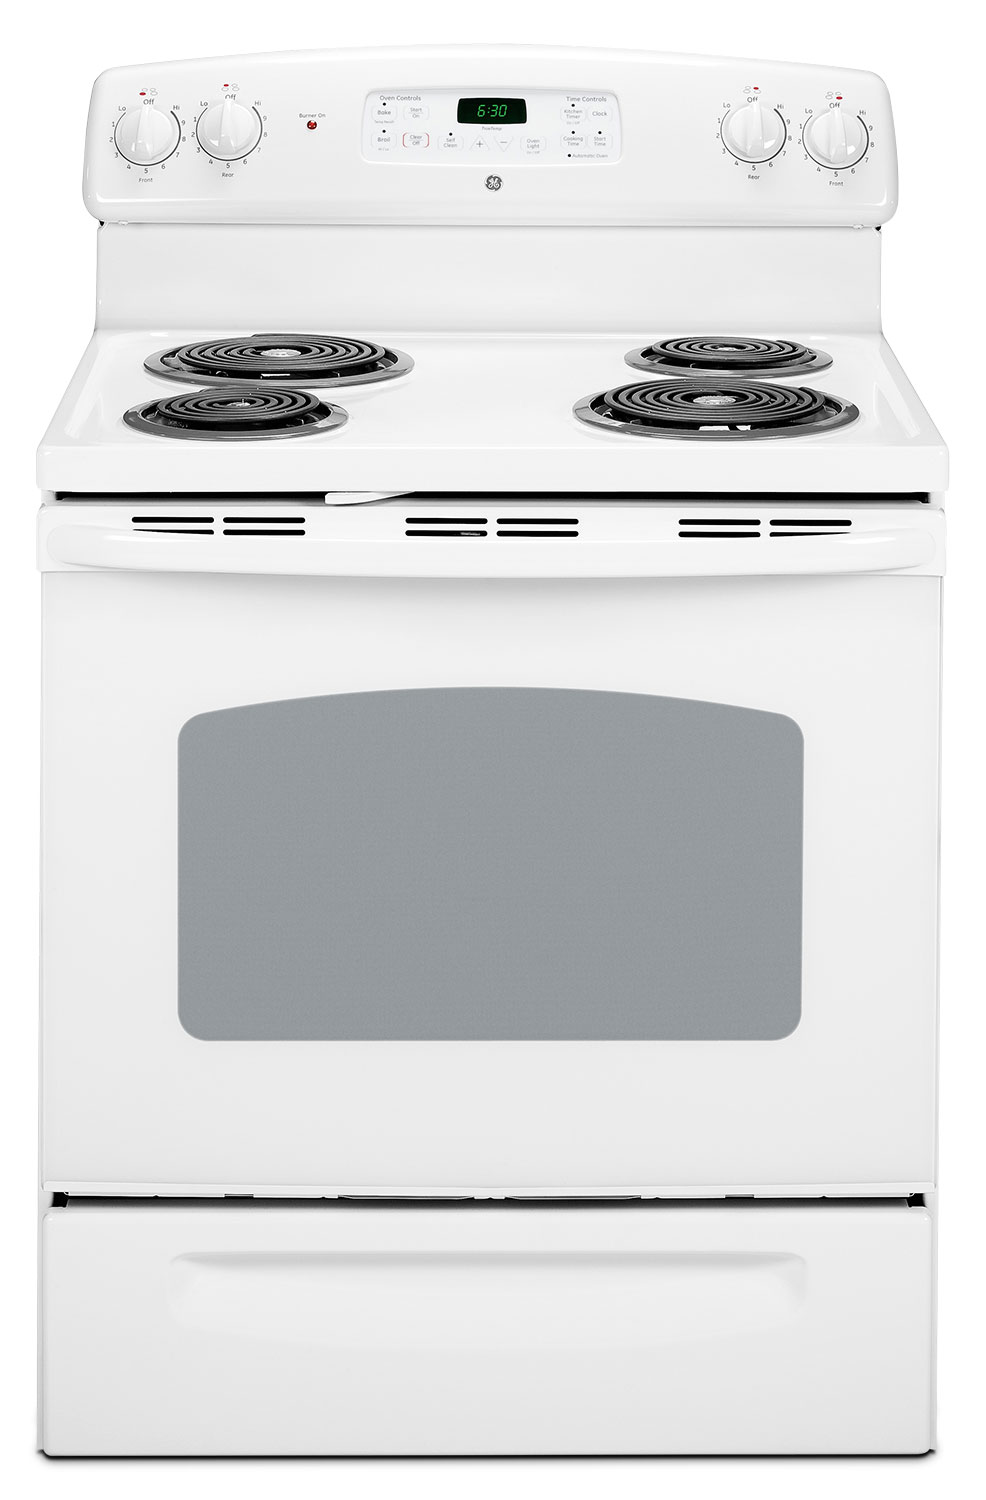 Cooking Products - GE 5.9 Cu. Ft. Freestanding Electric Range – JCBP240DTWW